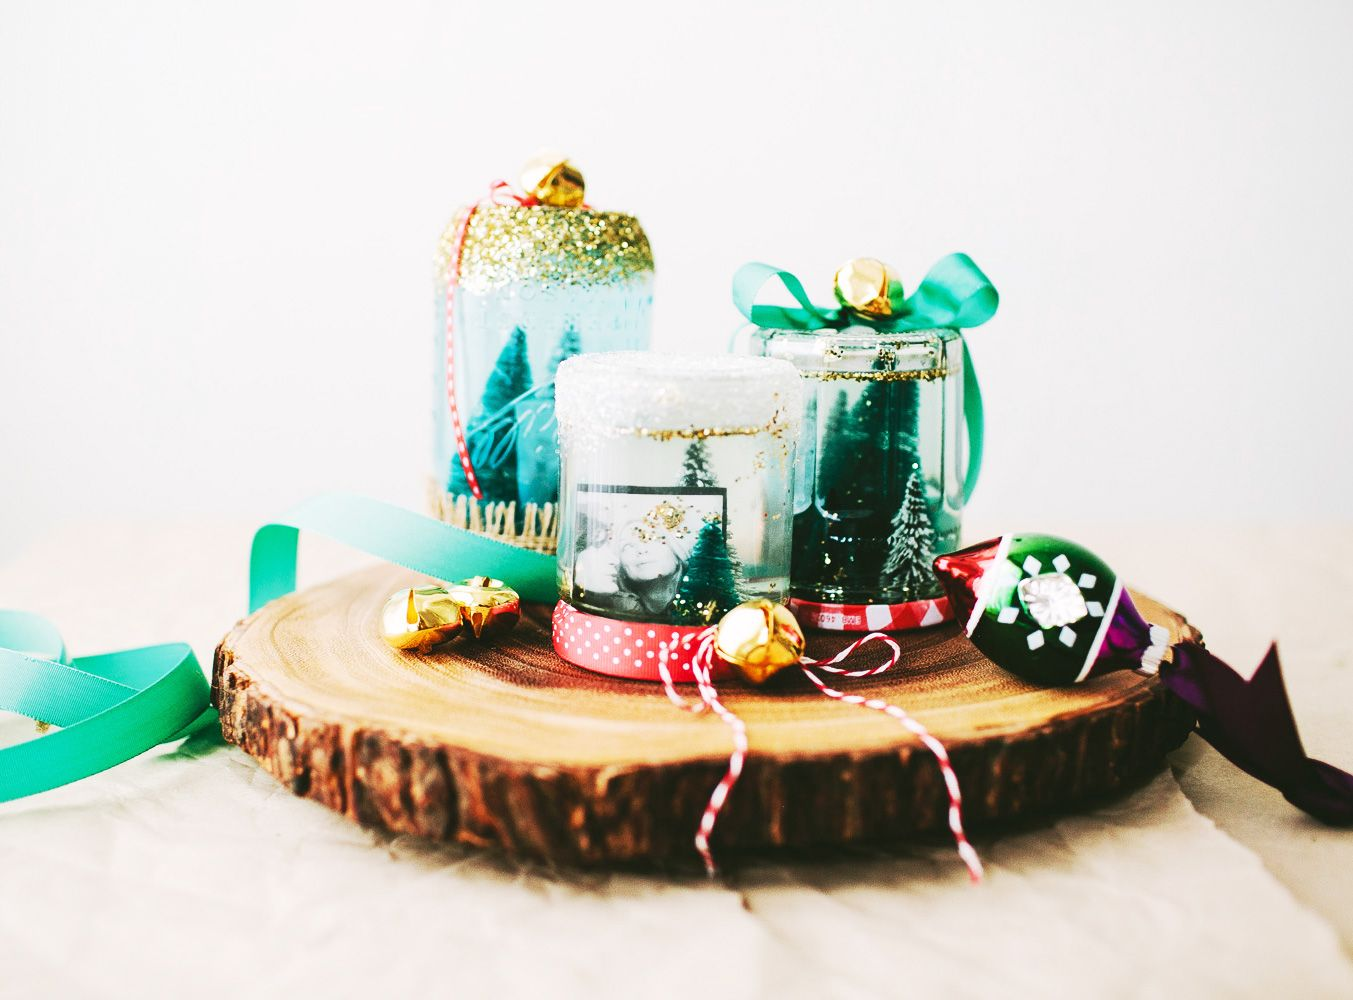 diy_homemade_snow_globe_13.jpg 1 353 × 1 000 pixels